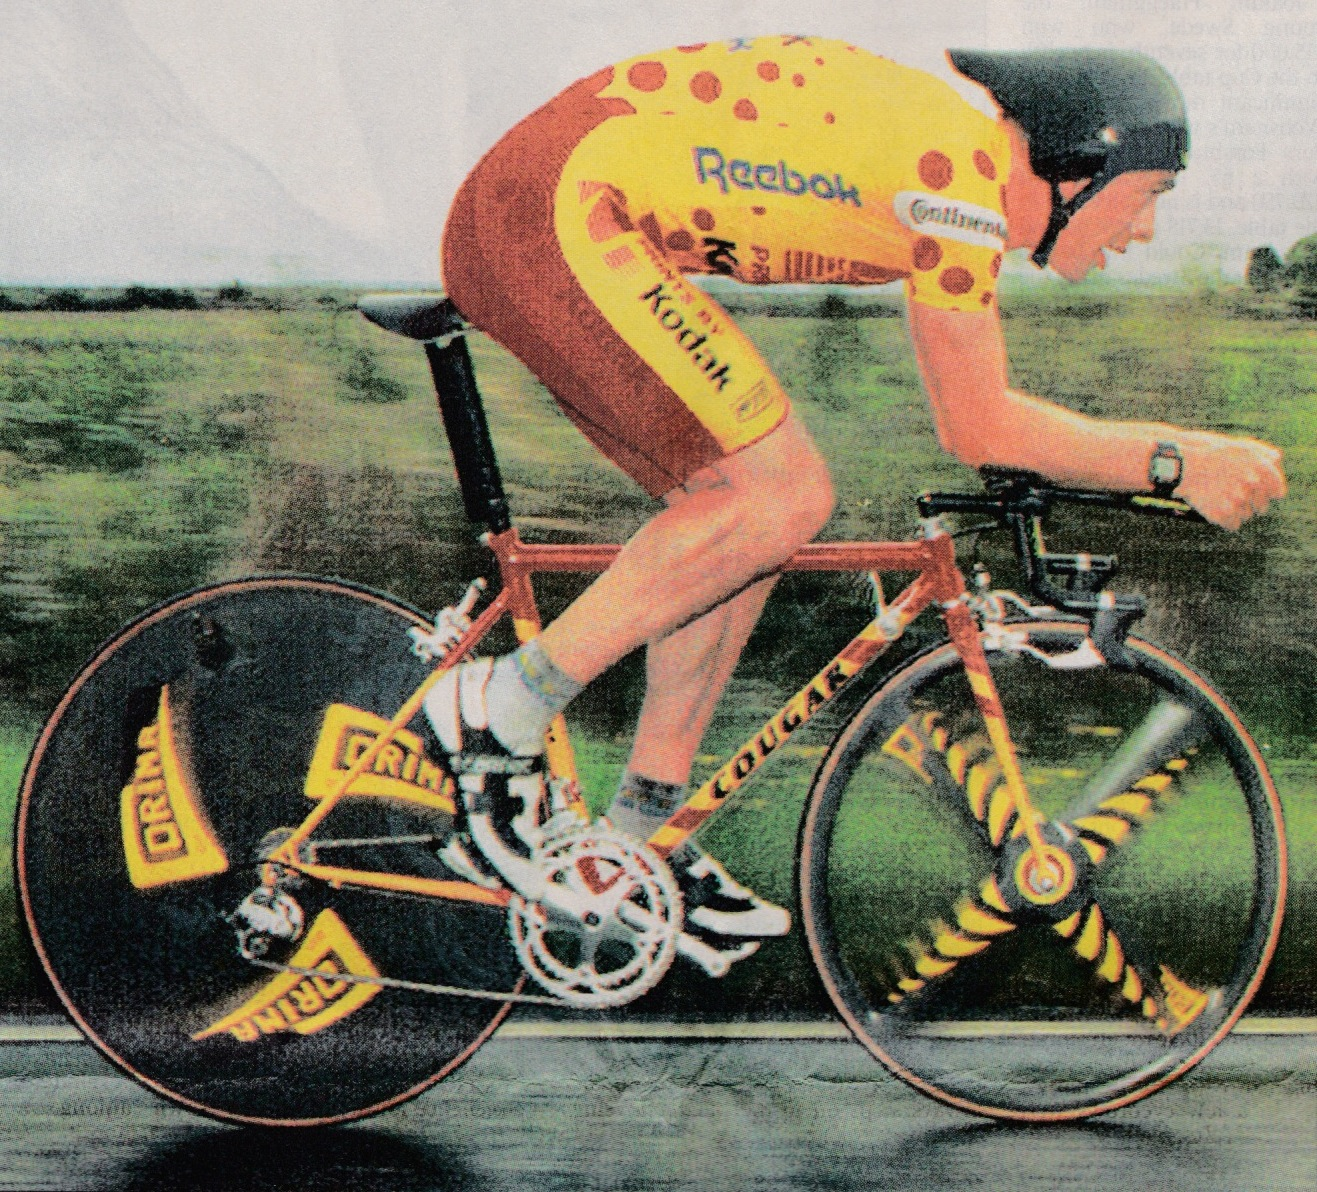 Chris Board (Kodak) set the previous record of 49:36 in 1993 (photo - The Times)